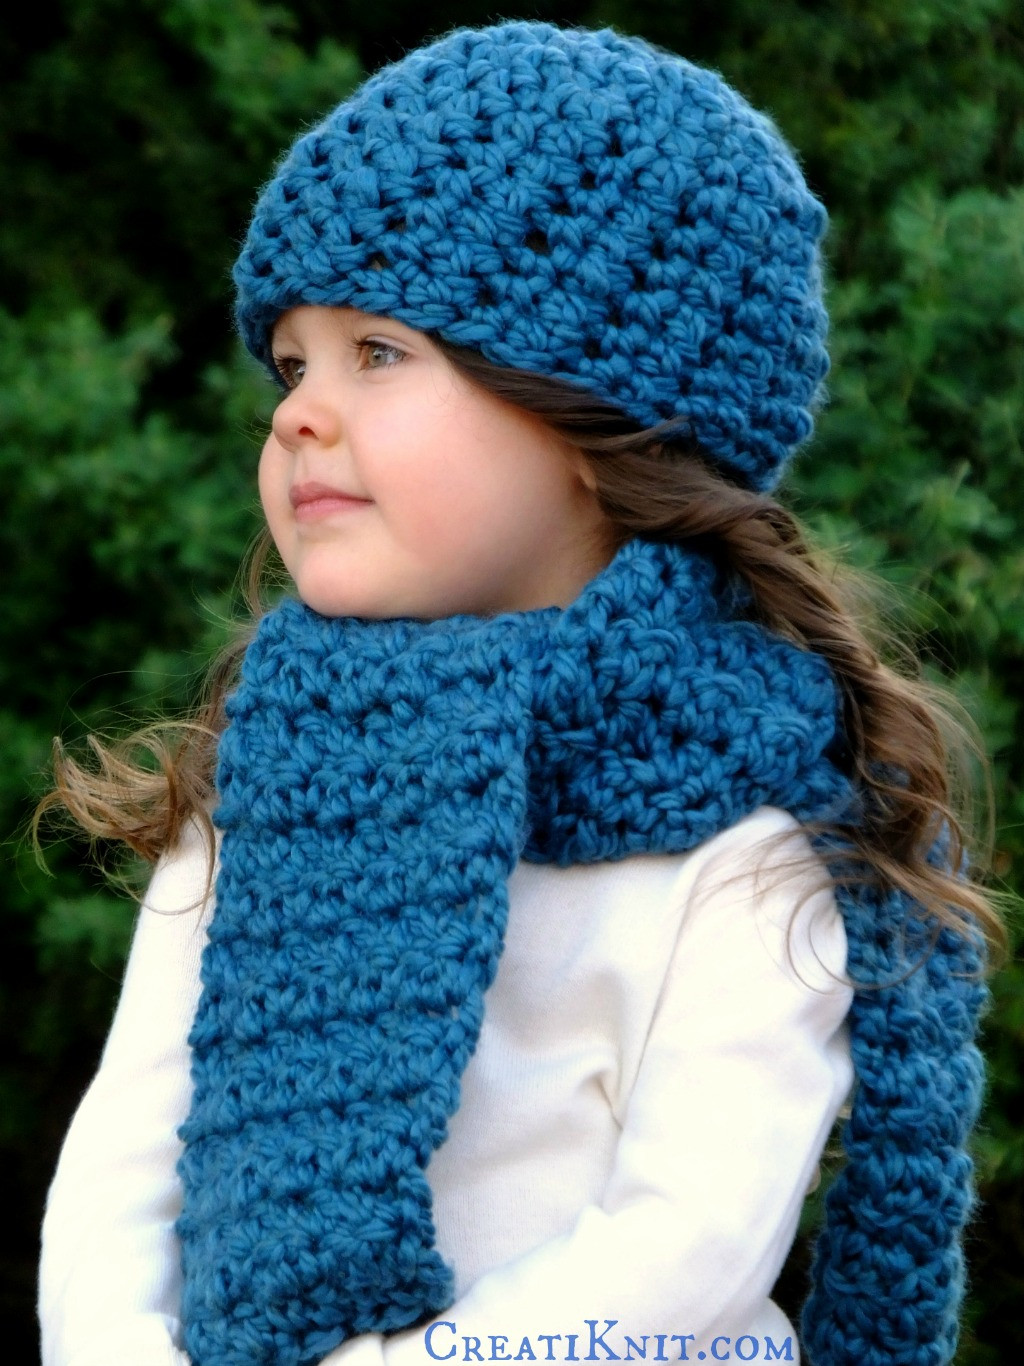 Lovely Crochet Hat and Scarf Sets Crochet Hat and Scarf Of Superb 50 Pics Crochet Hat and Scarf